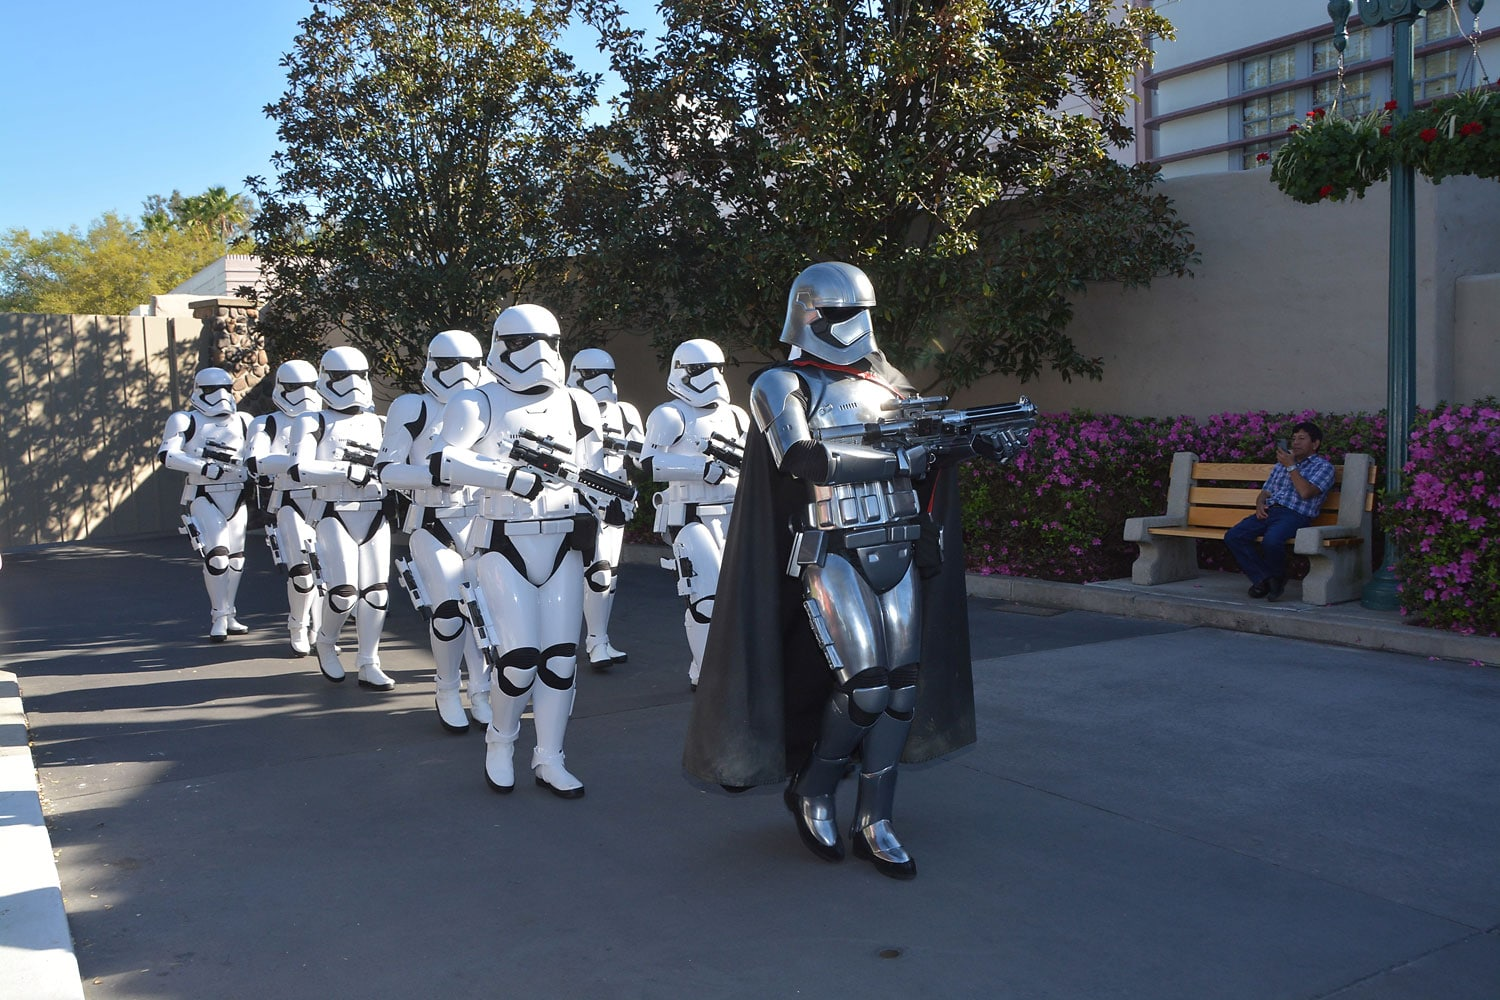 The First Order March on the Star Wars Guided Tour at Disney's Hollywood Studios